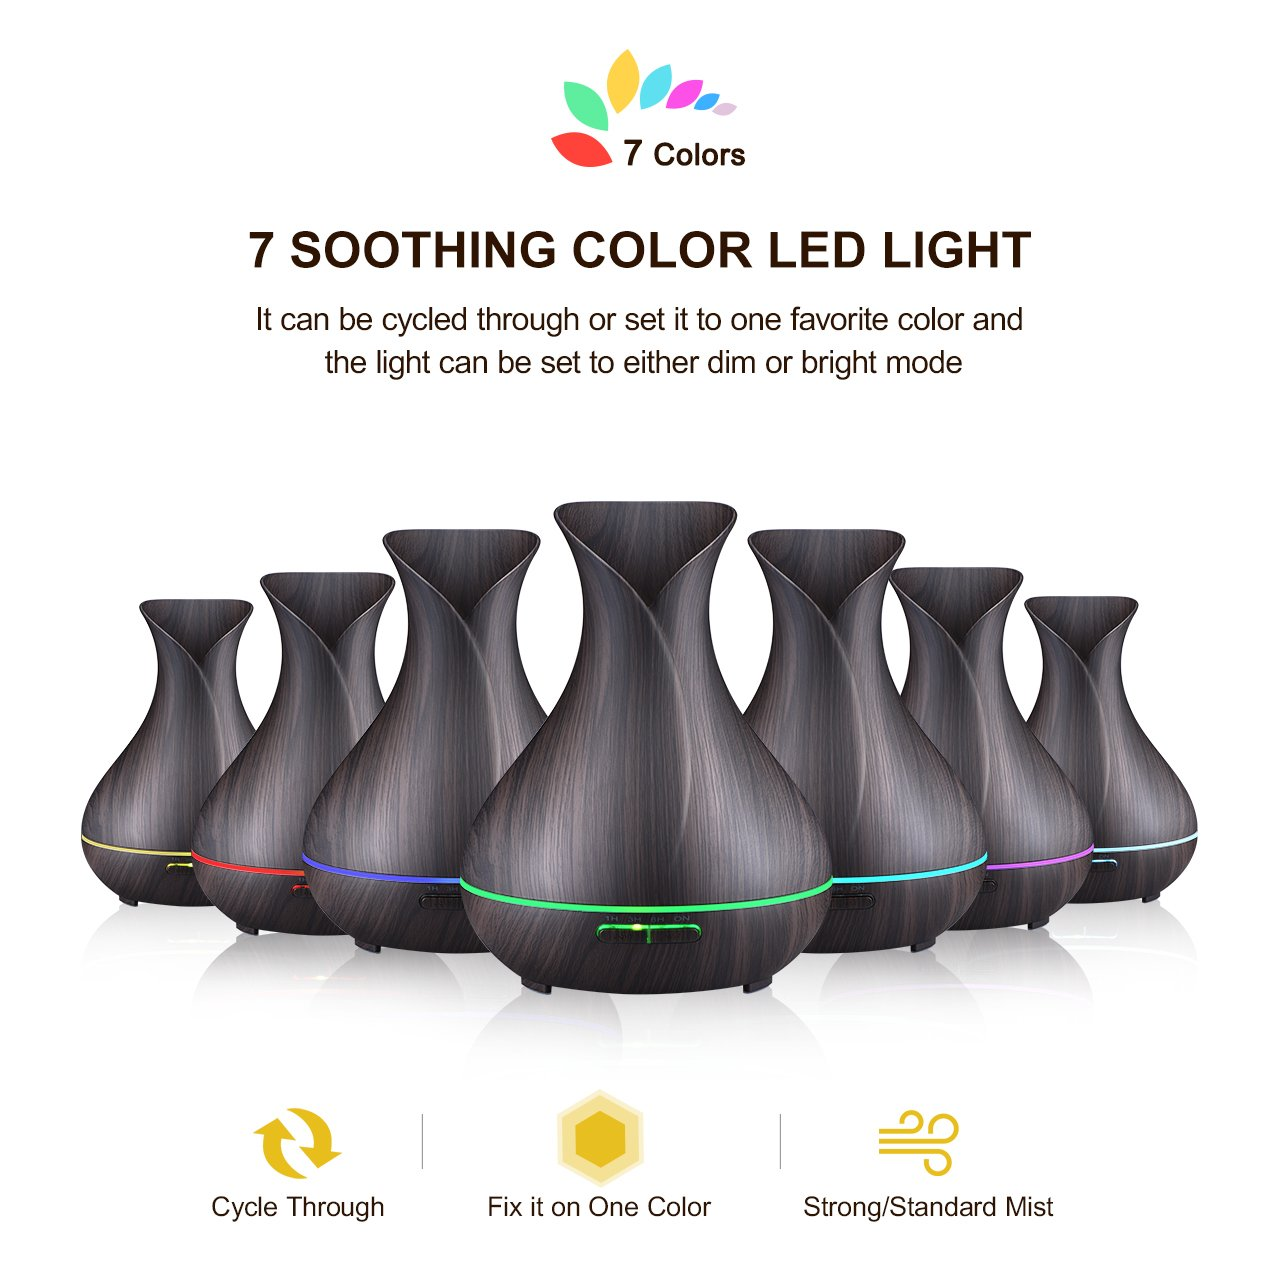 VicTsing 400ml Aromatherapy Essential Oil Diffuser, Ultrasonic Cool Mist Humidifier with Wood Grain Design, 4 Timer Settings for Office, Room, Spa by VicTsing (Image #2)